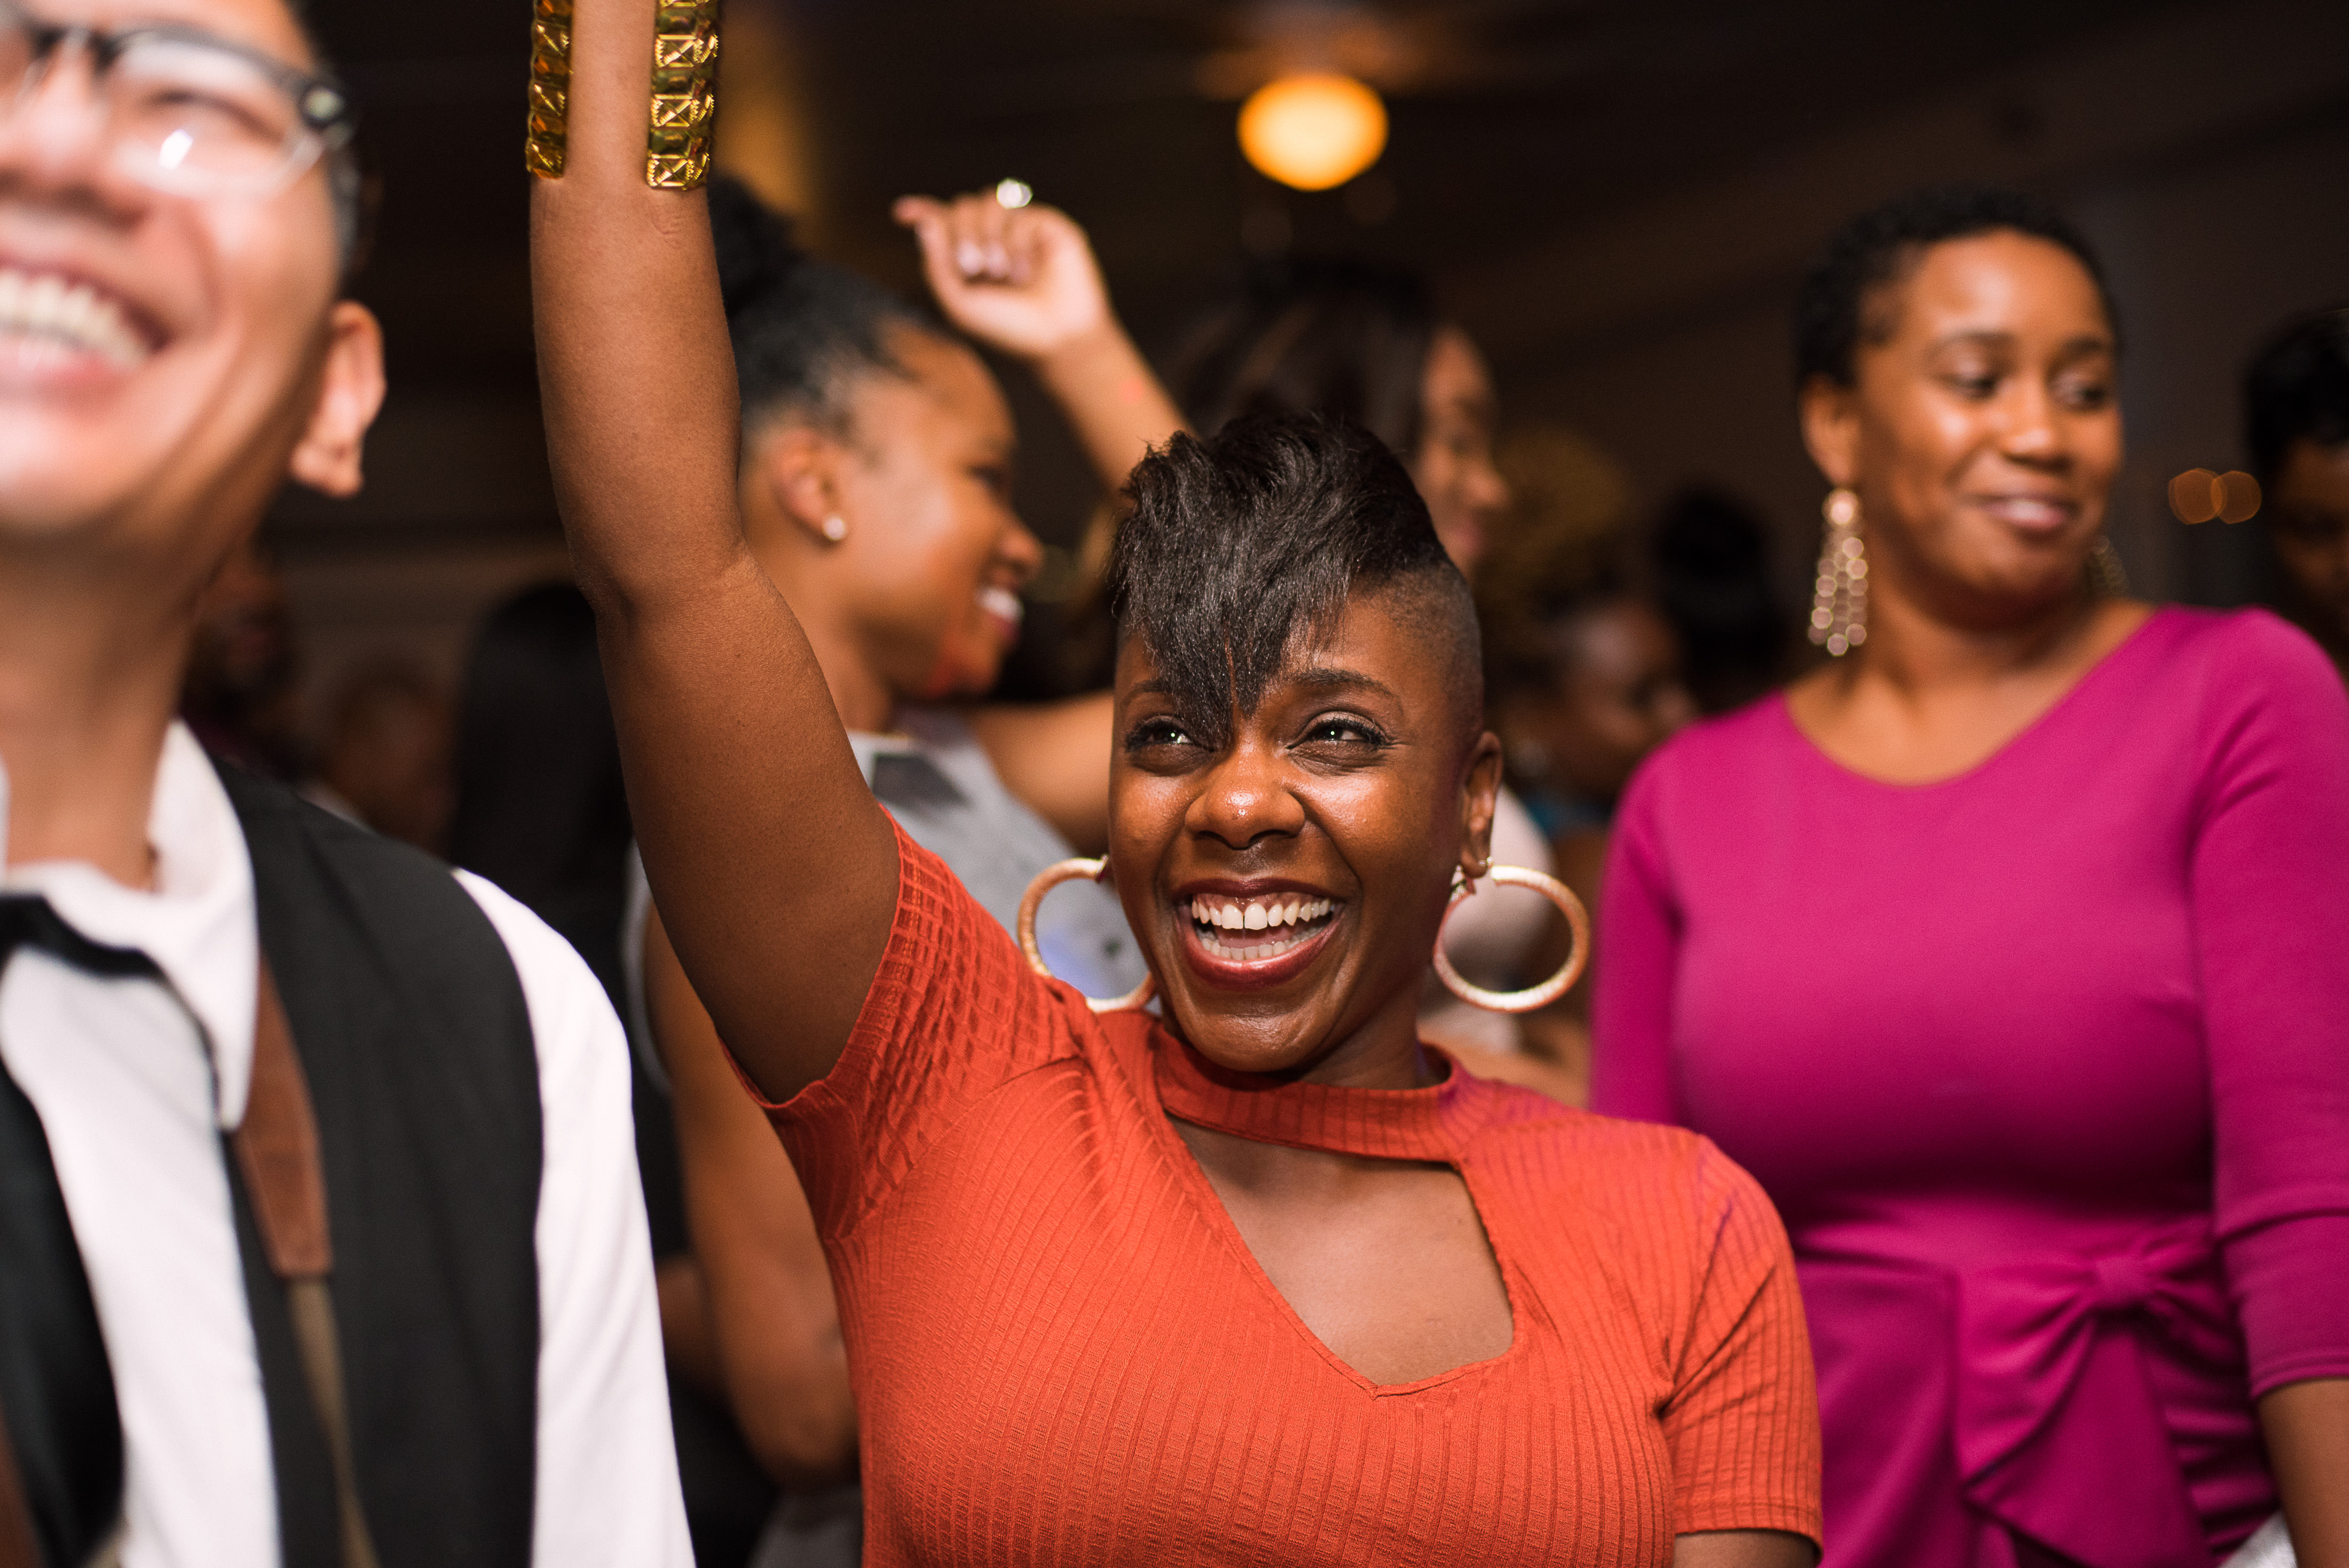 A woman dancing at a wedding reception